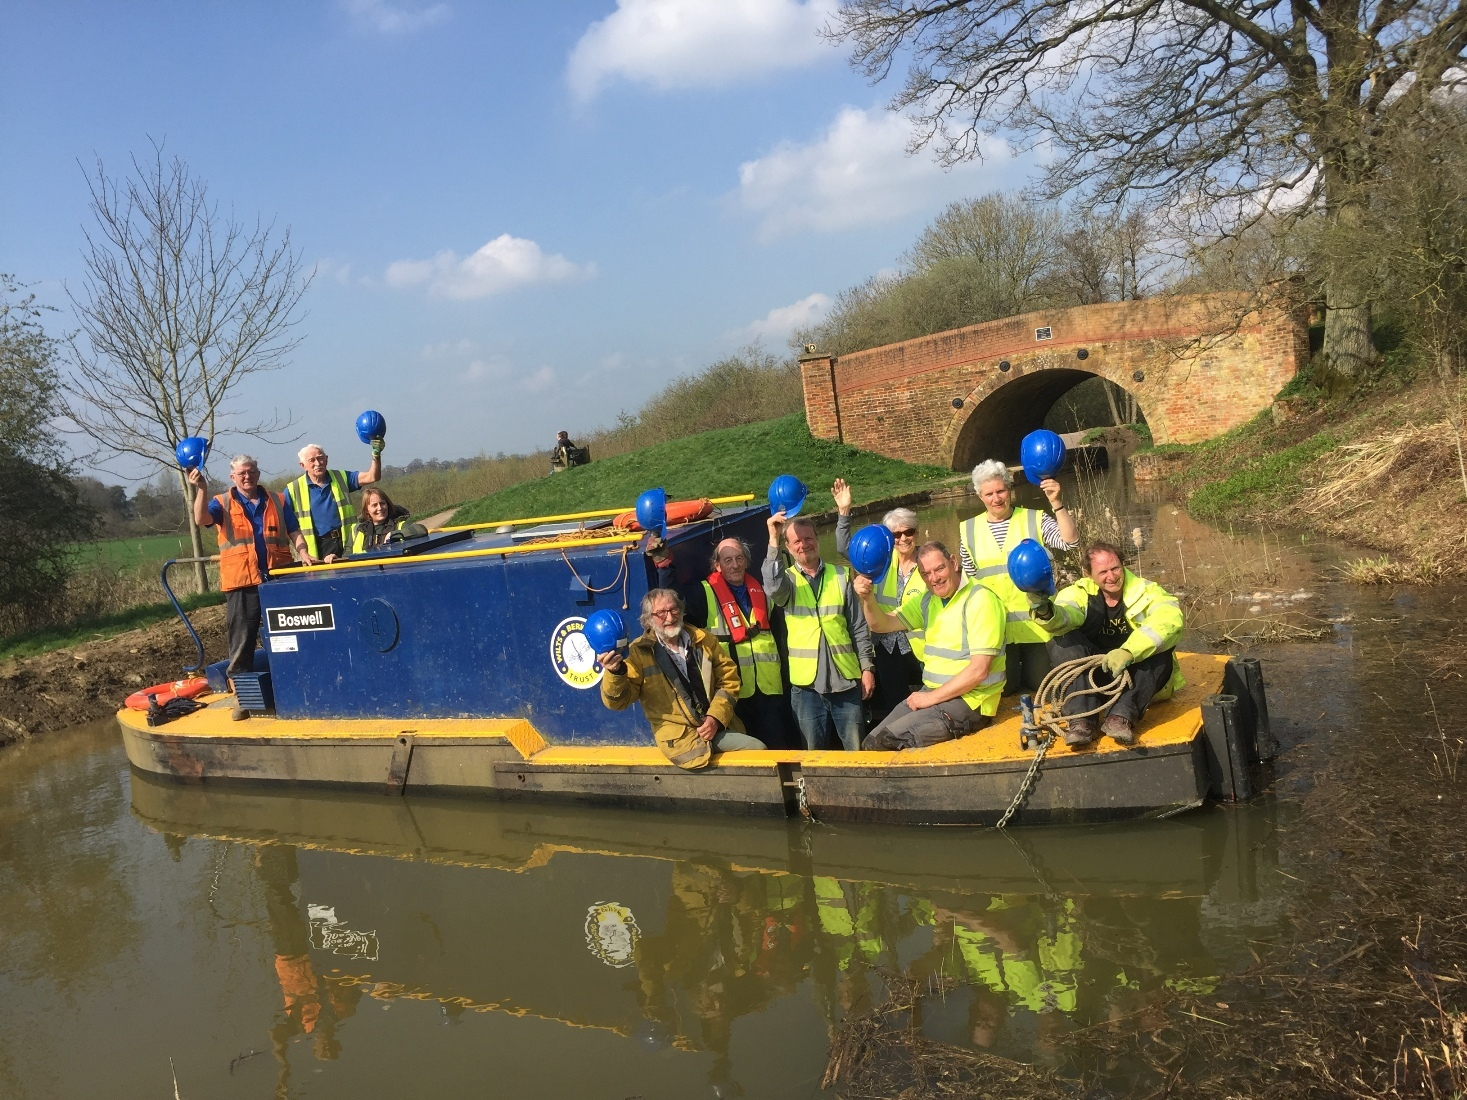 Wilts & Berks Canal Trust members from Melksham, Chippenham & Calne Branch aboard Boswell in front of Double Bridge. Photo: Justin Guy.